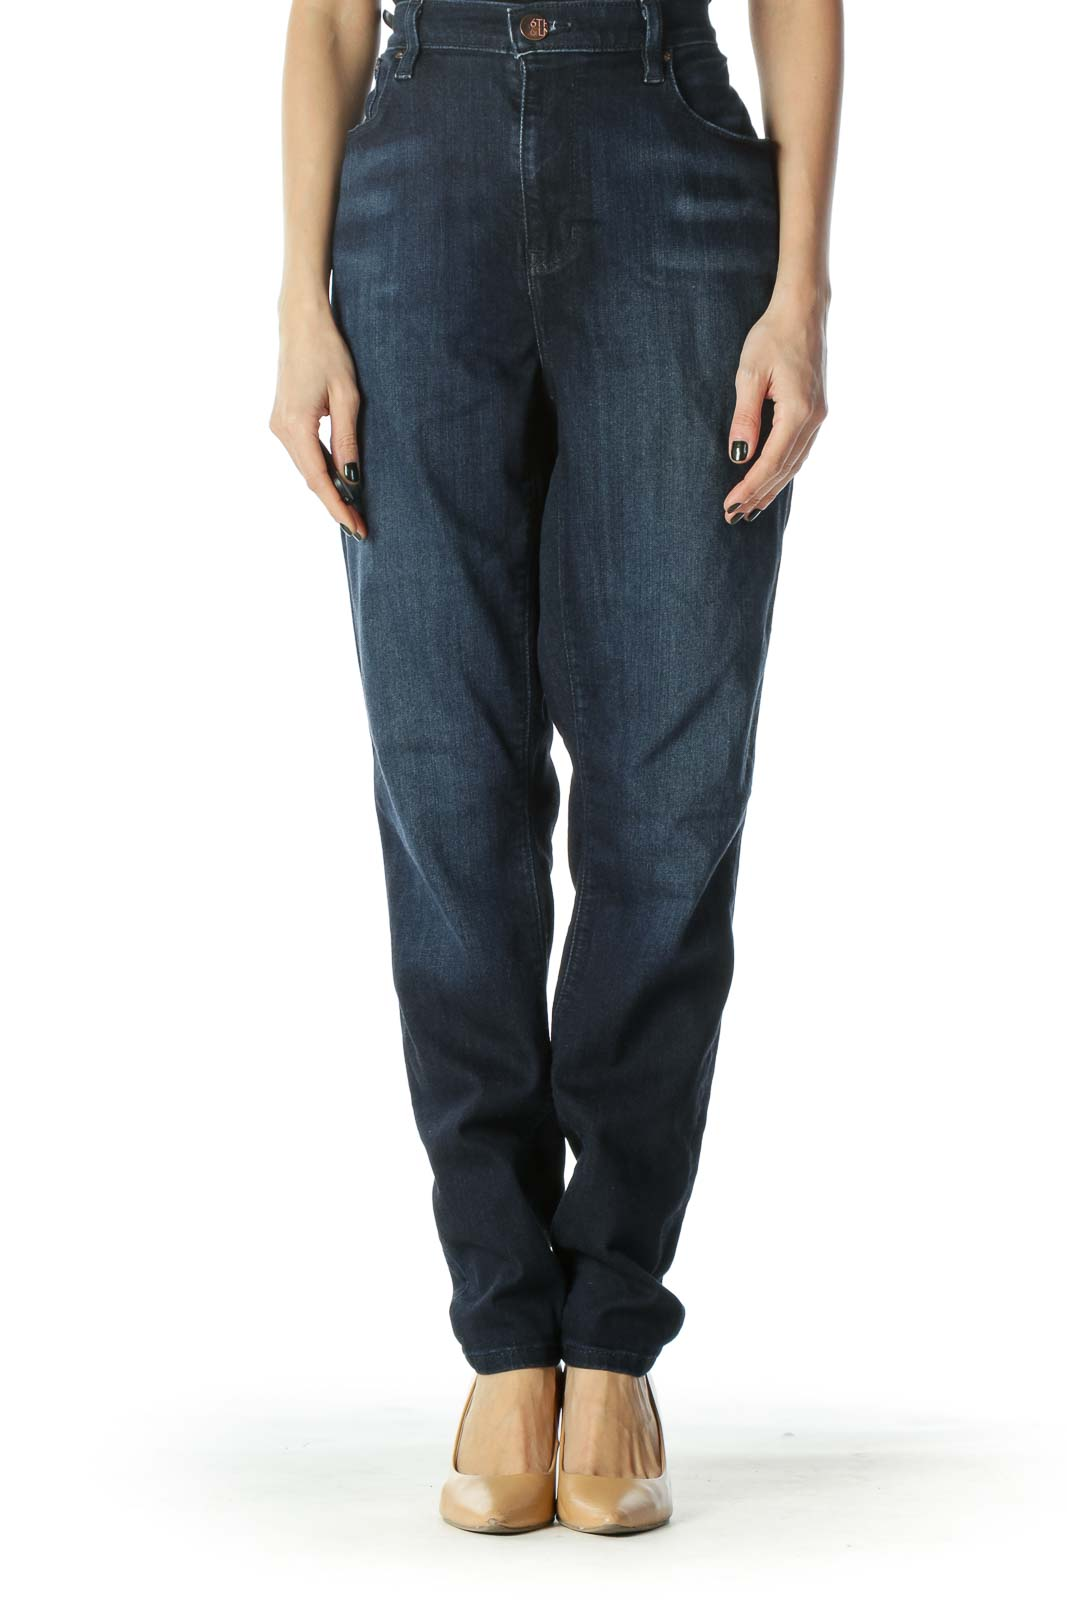 Blue Dark Wash Straight Leg Denim Jeans